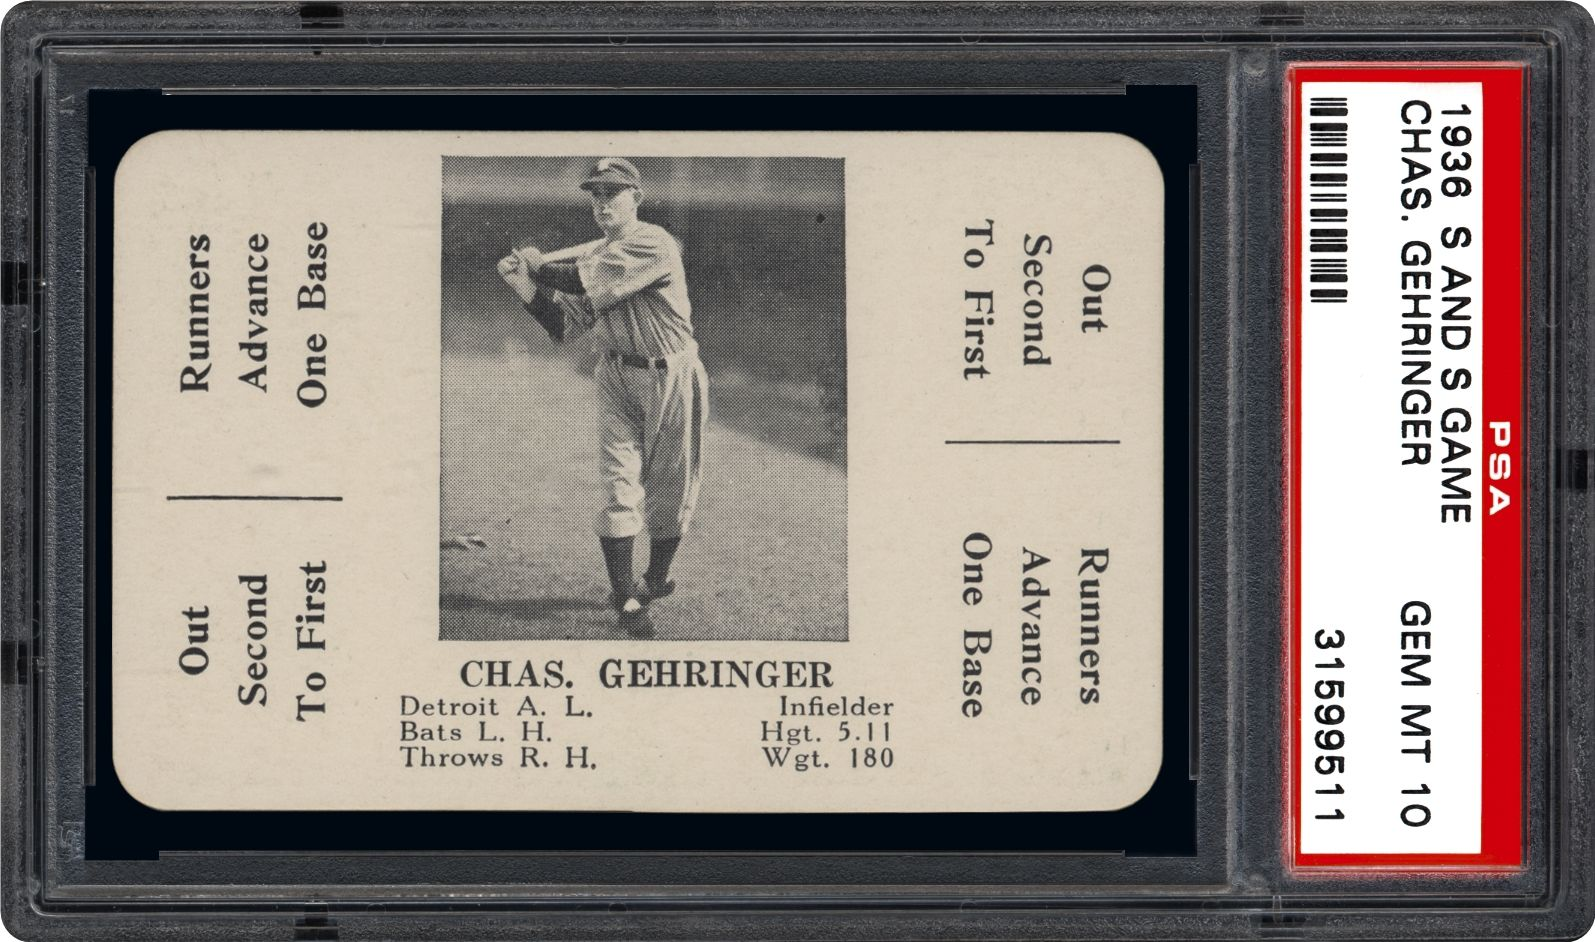 Chas. Gehringer - 1936 S and S Game